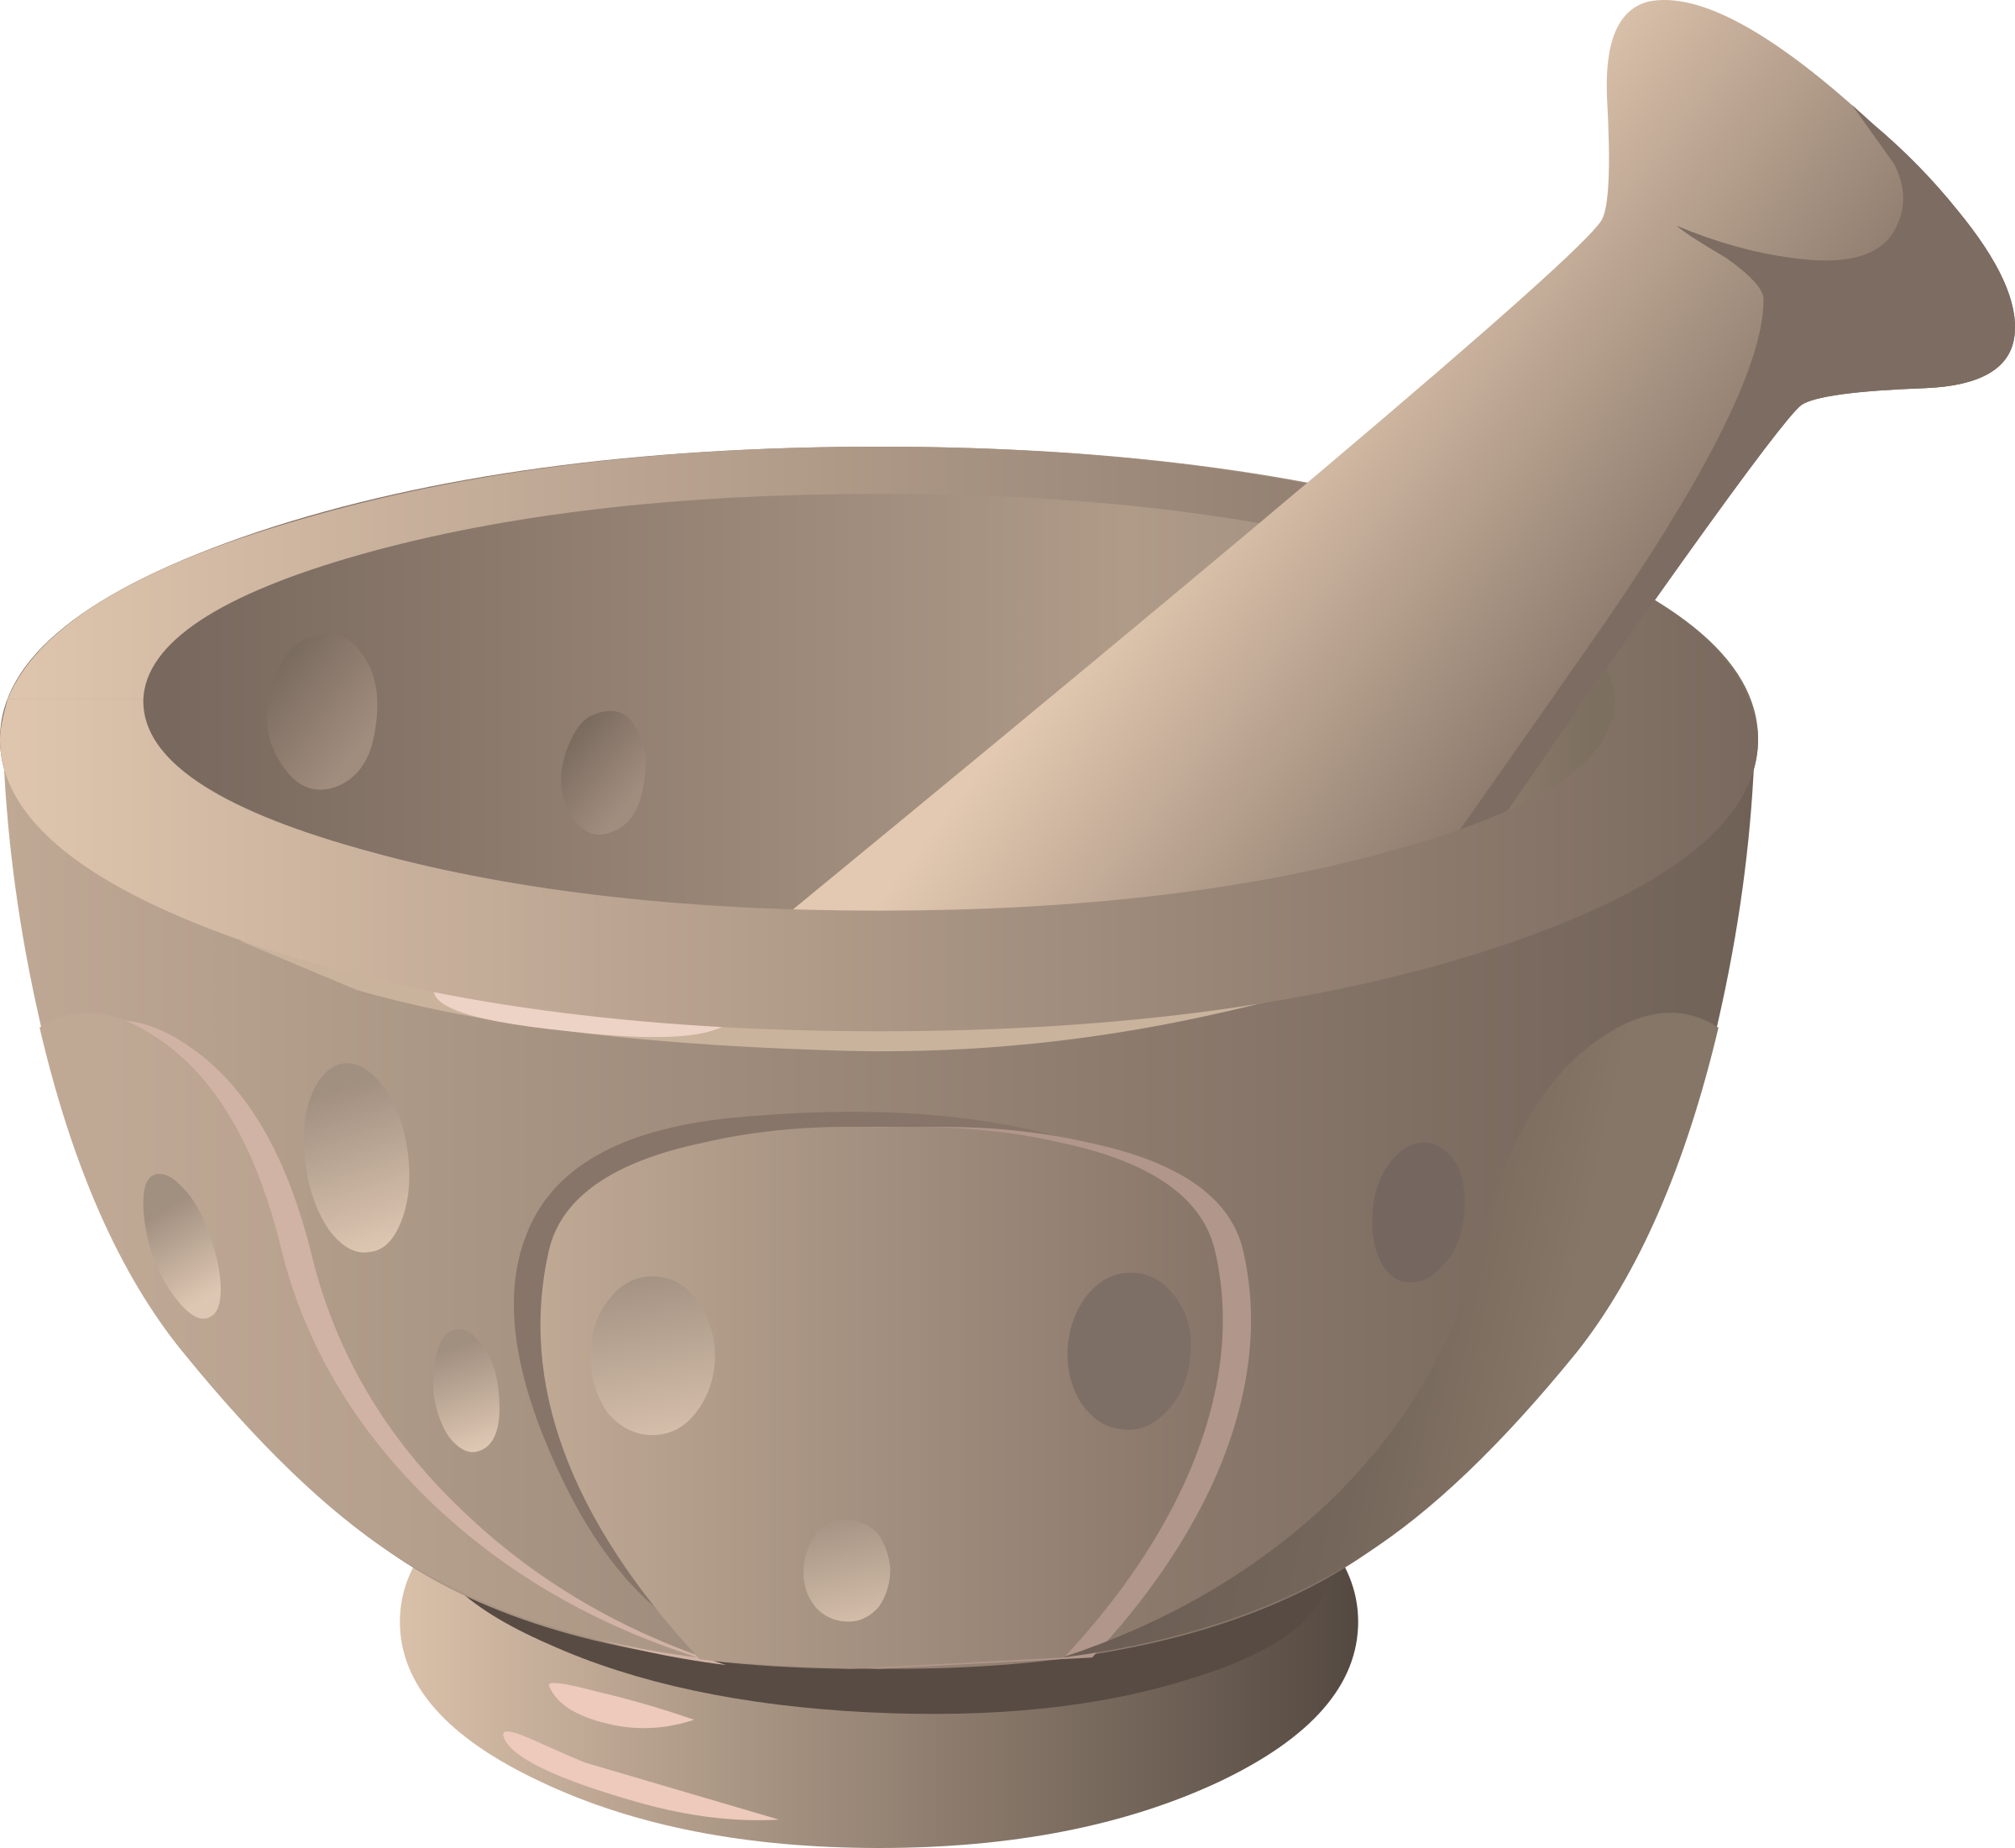 svg library stock Mortar and pestle clipart. Tools big image png.